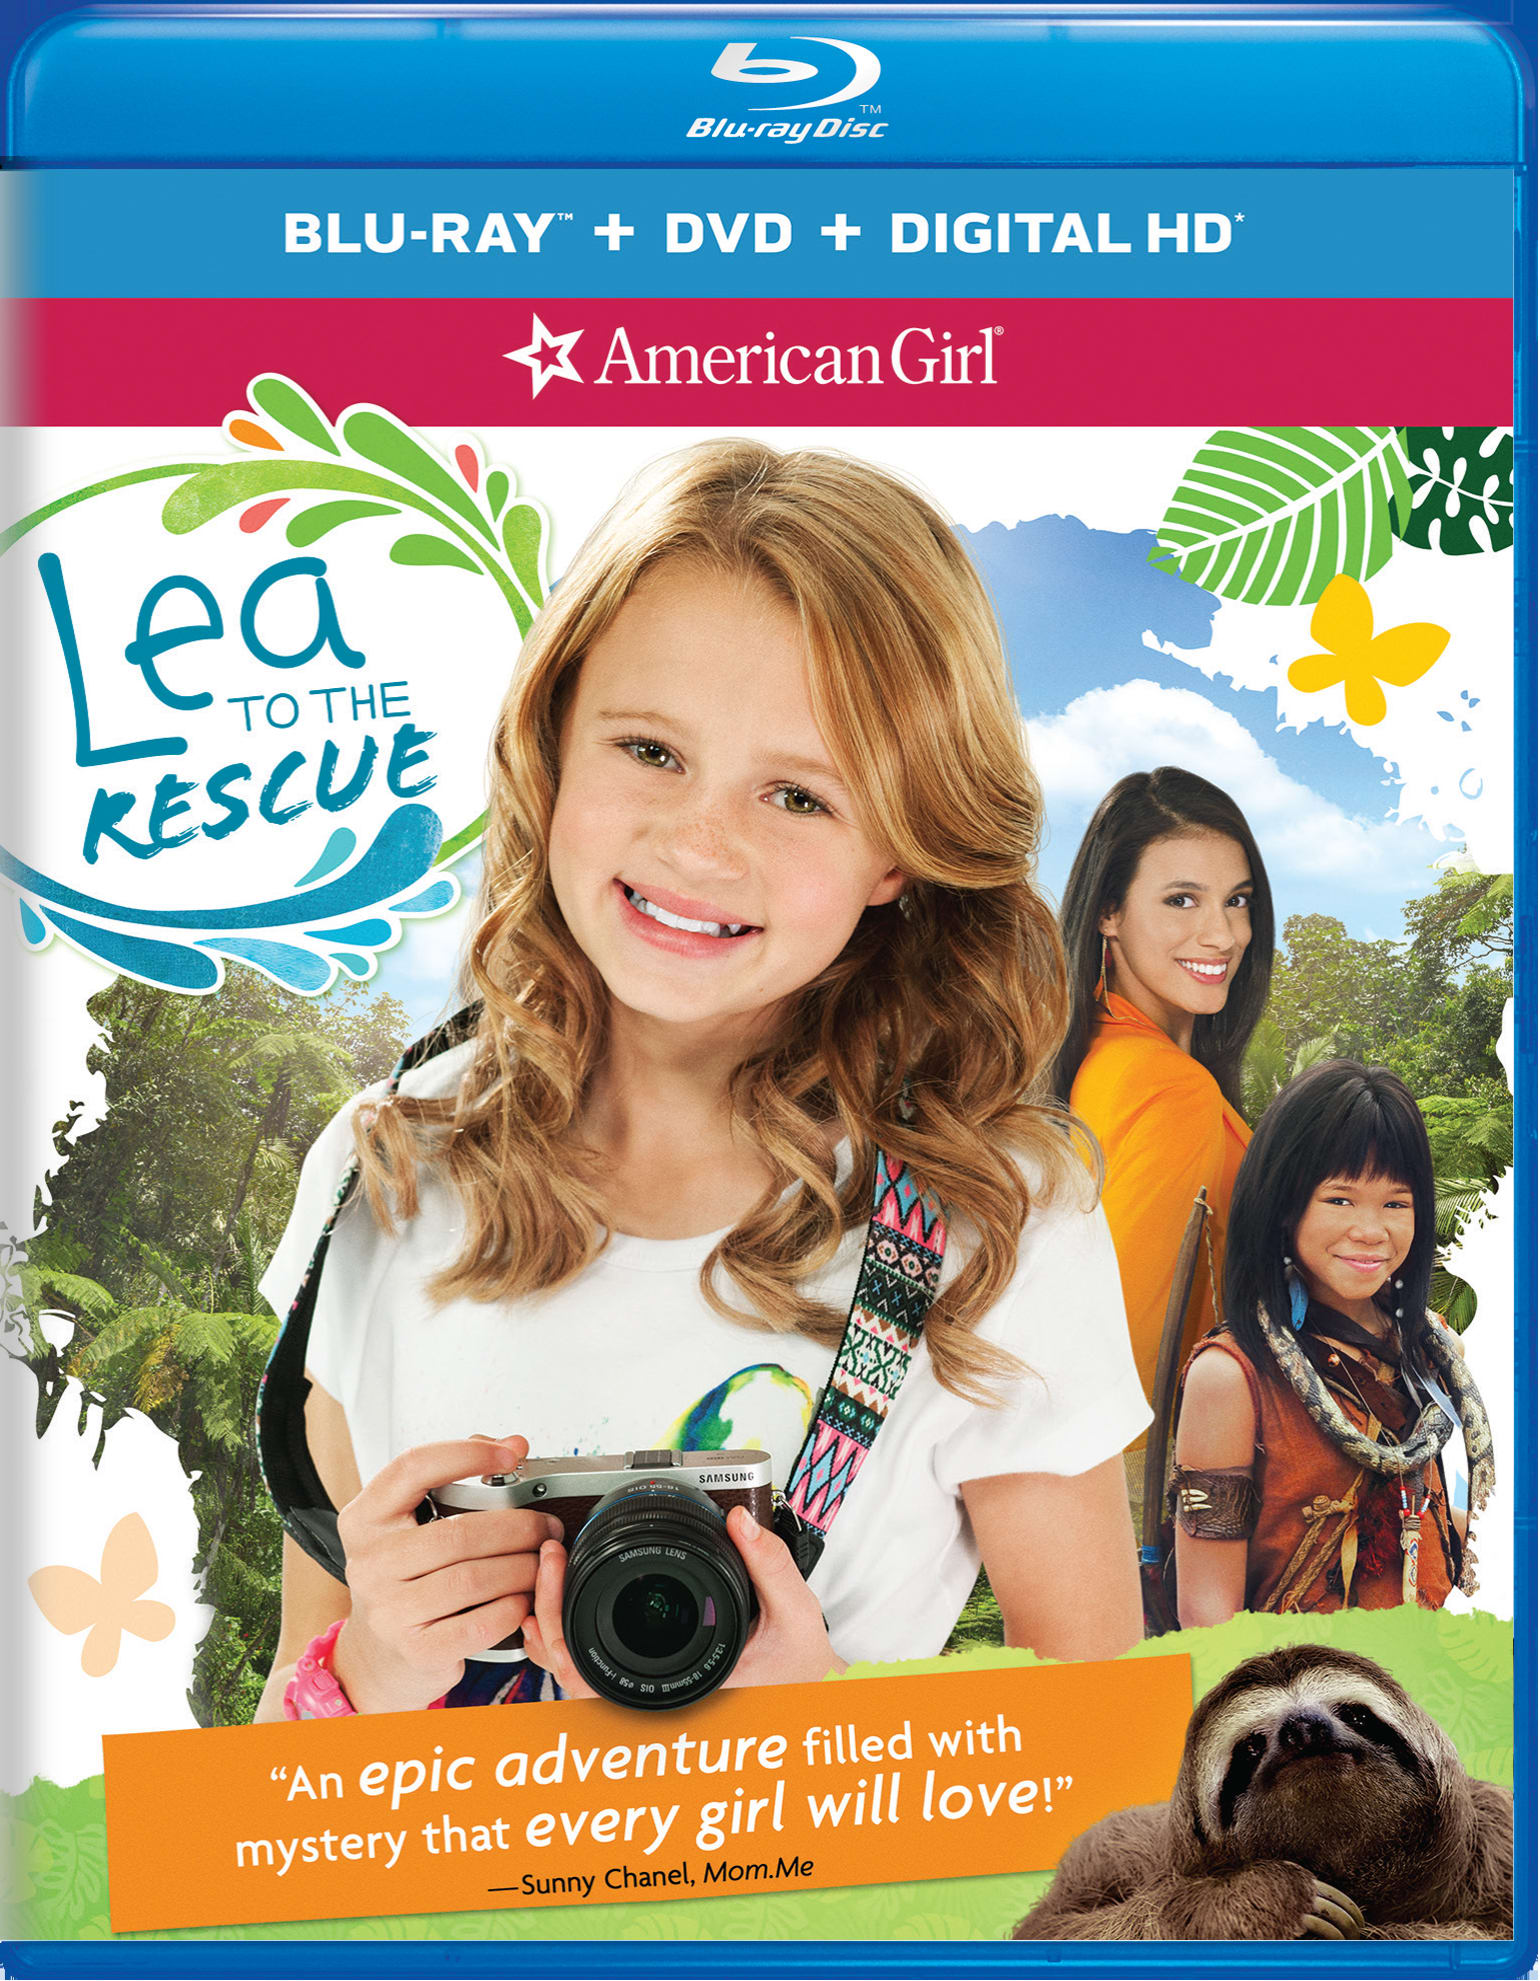 American Girl: Lea to the Rescue (DVD + Digital) [Blu-ray]